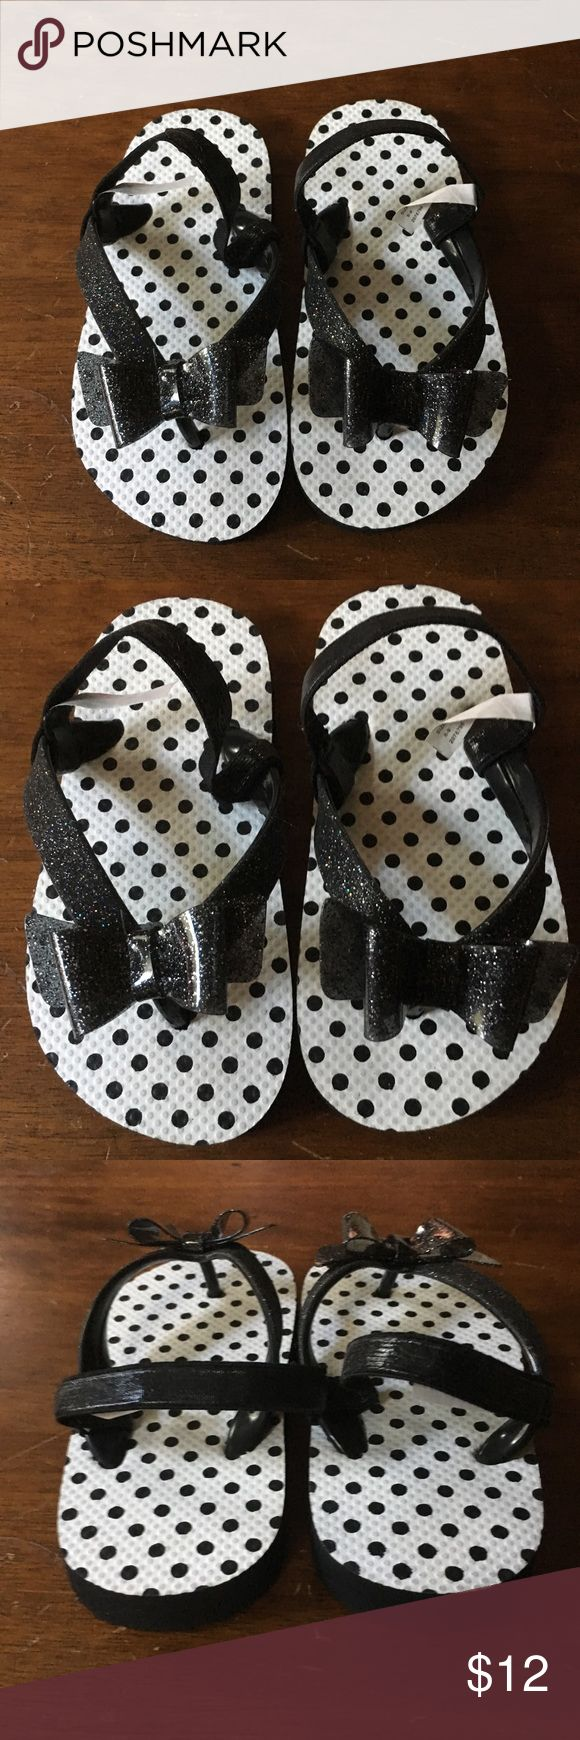 Toddler girl black and white glitter flip flops Toddler girl black and white glitter flip flops.  New without tags.  Never worn. Children's Place Shoes Sandals & Flip Flops